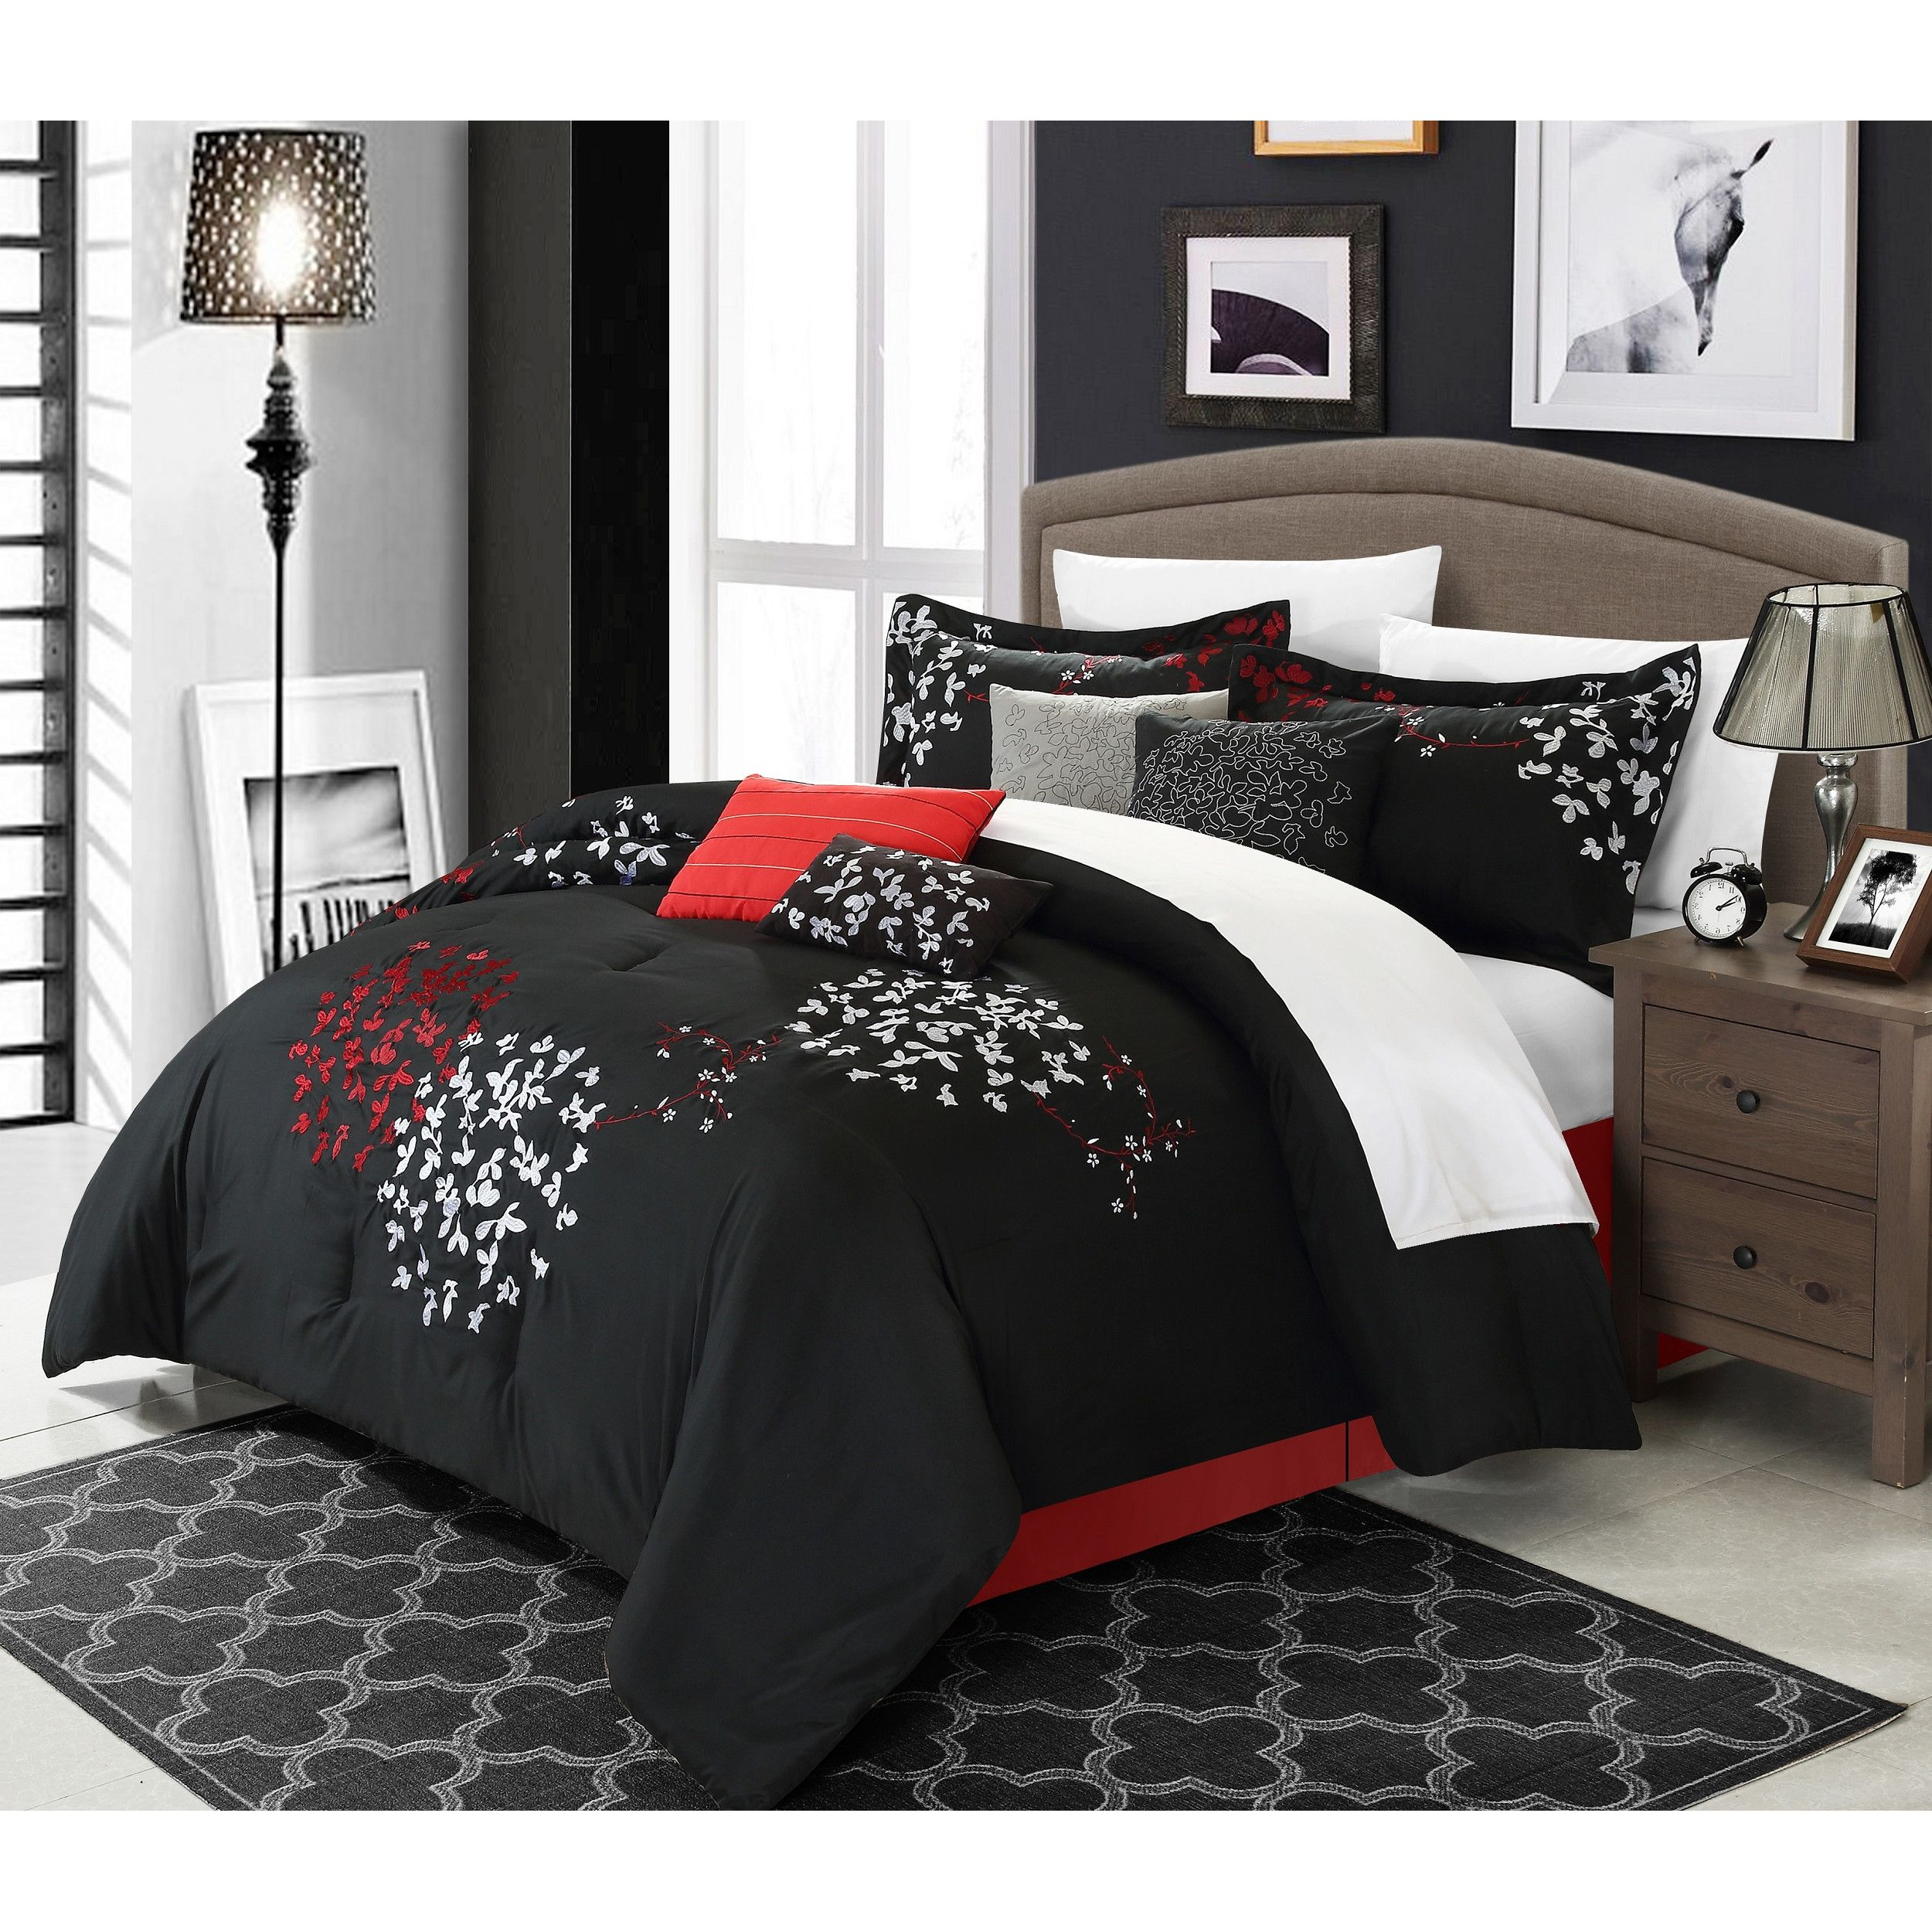 macys variation by bed images beds ga discount sebec sets with comforter canada a twin size sale prissy bedding nautical queen zoom view uk adults king for contemporary nautica clearance